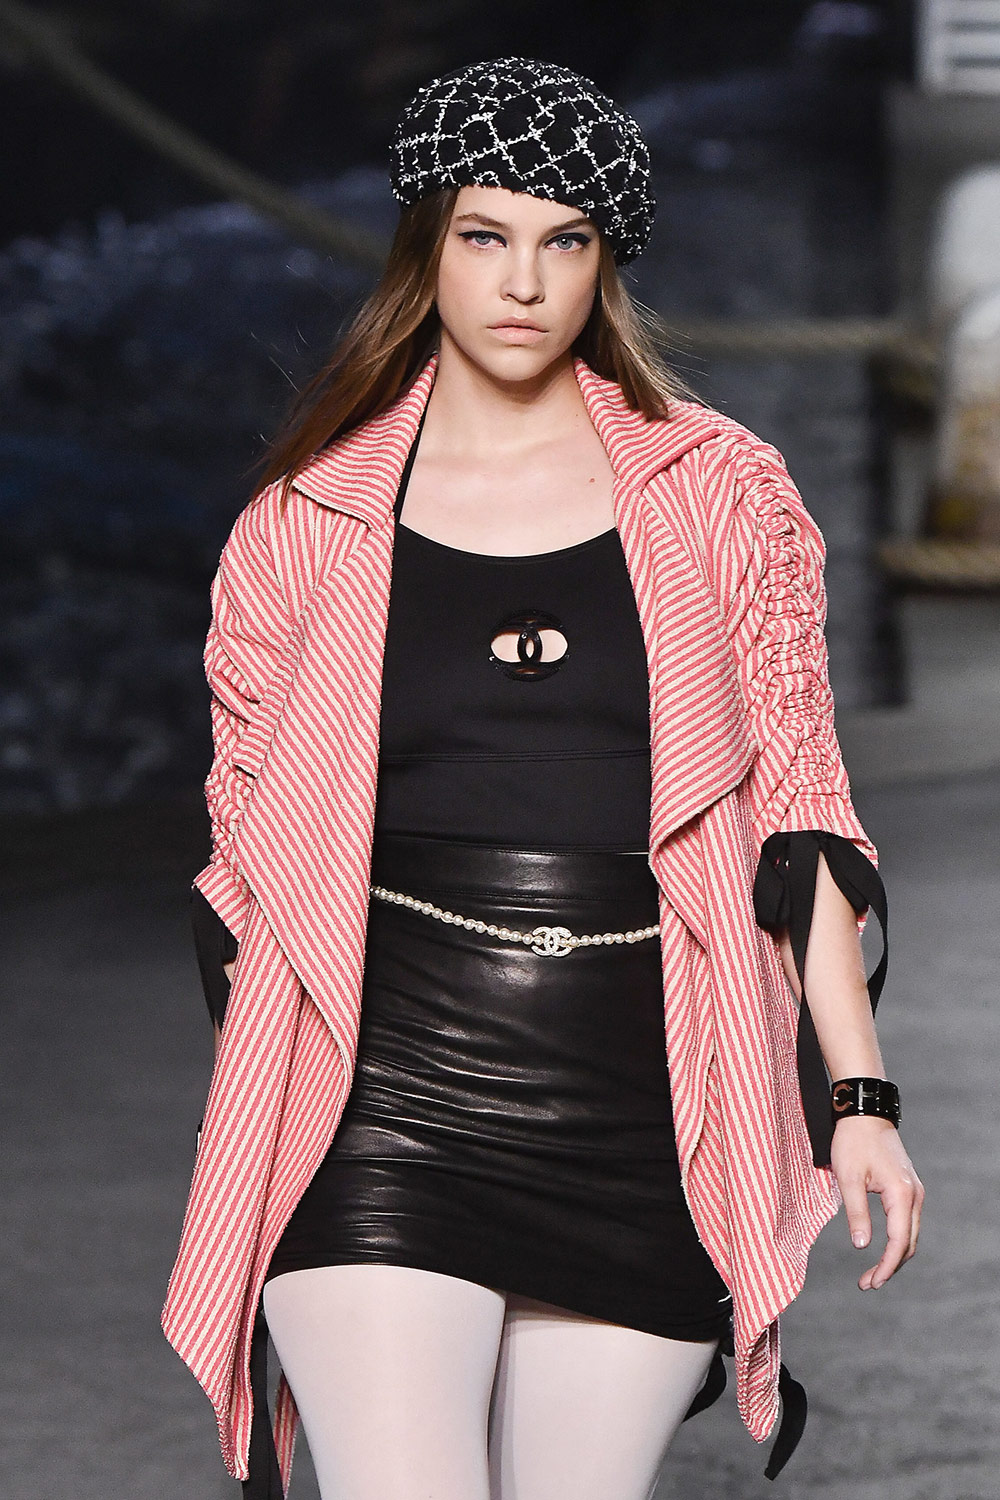 Barbara Palvin attends Chanel Cruise 2018/2019 Collection